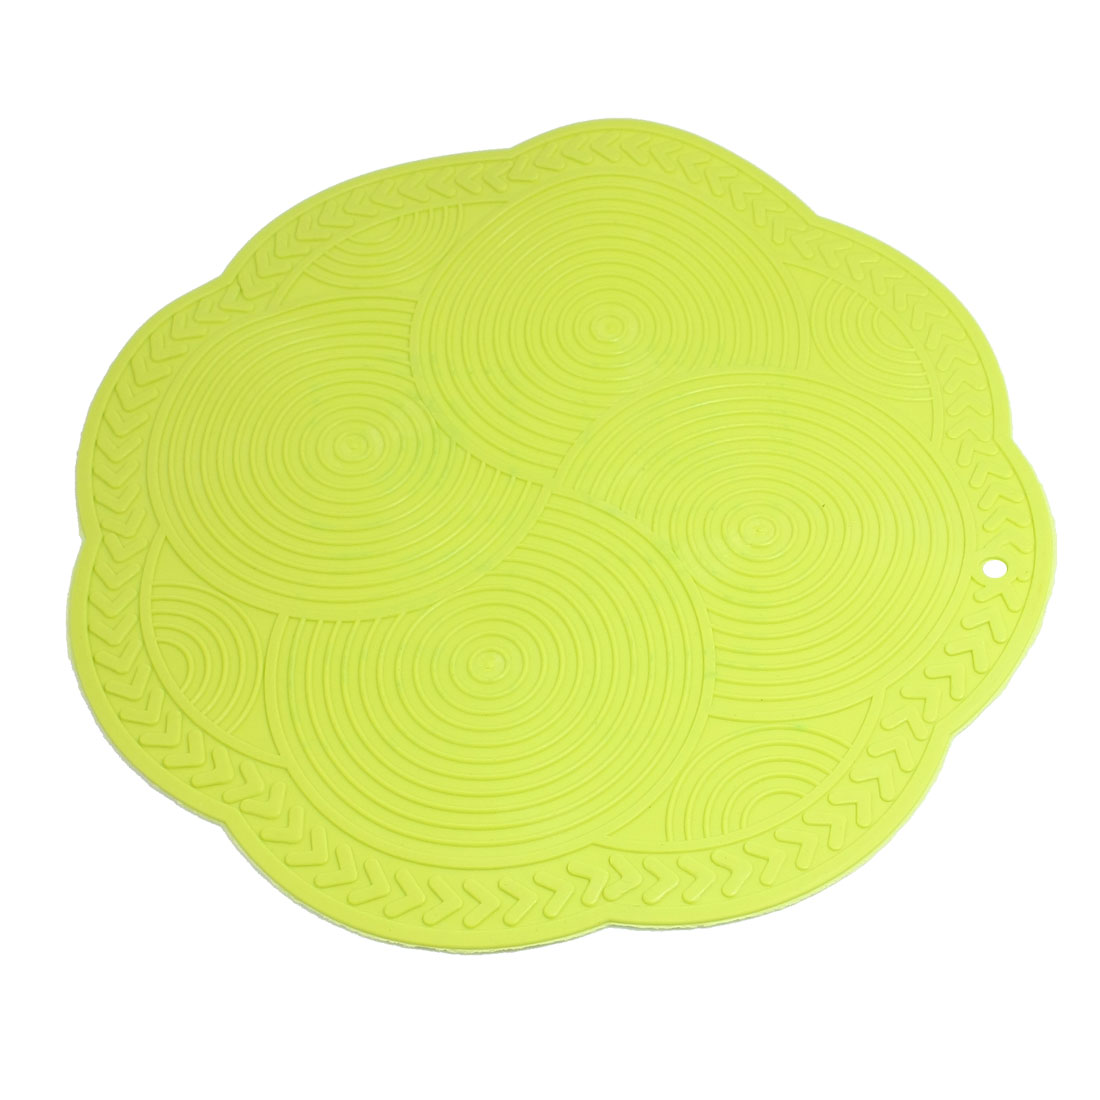 Kitchen Soft Plastic Yellowgreen Flower Shaped Heat Insulation Felt Pad Mat